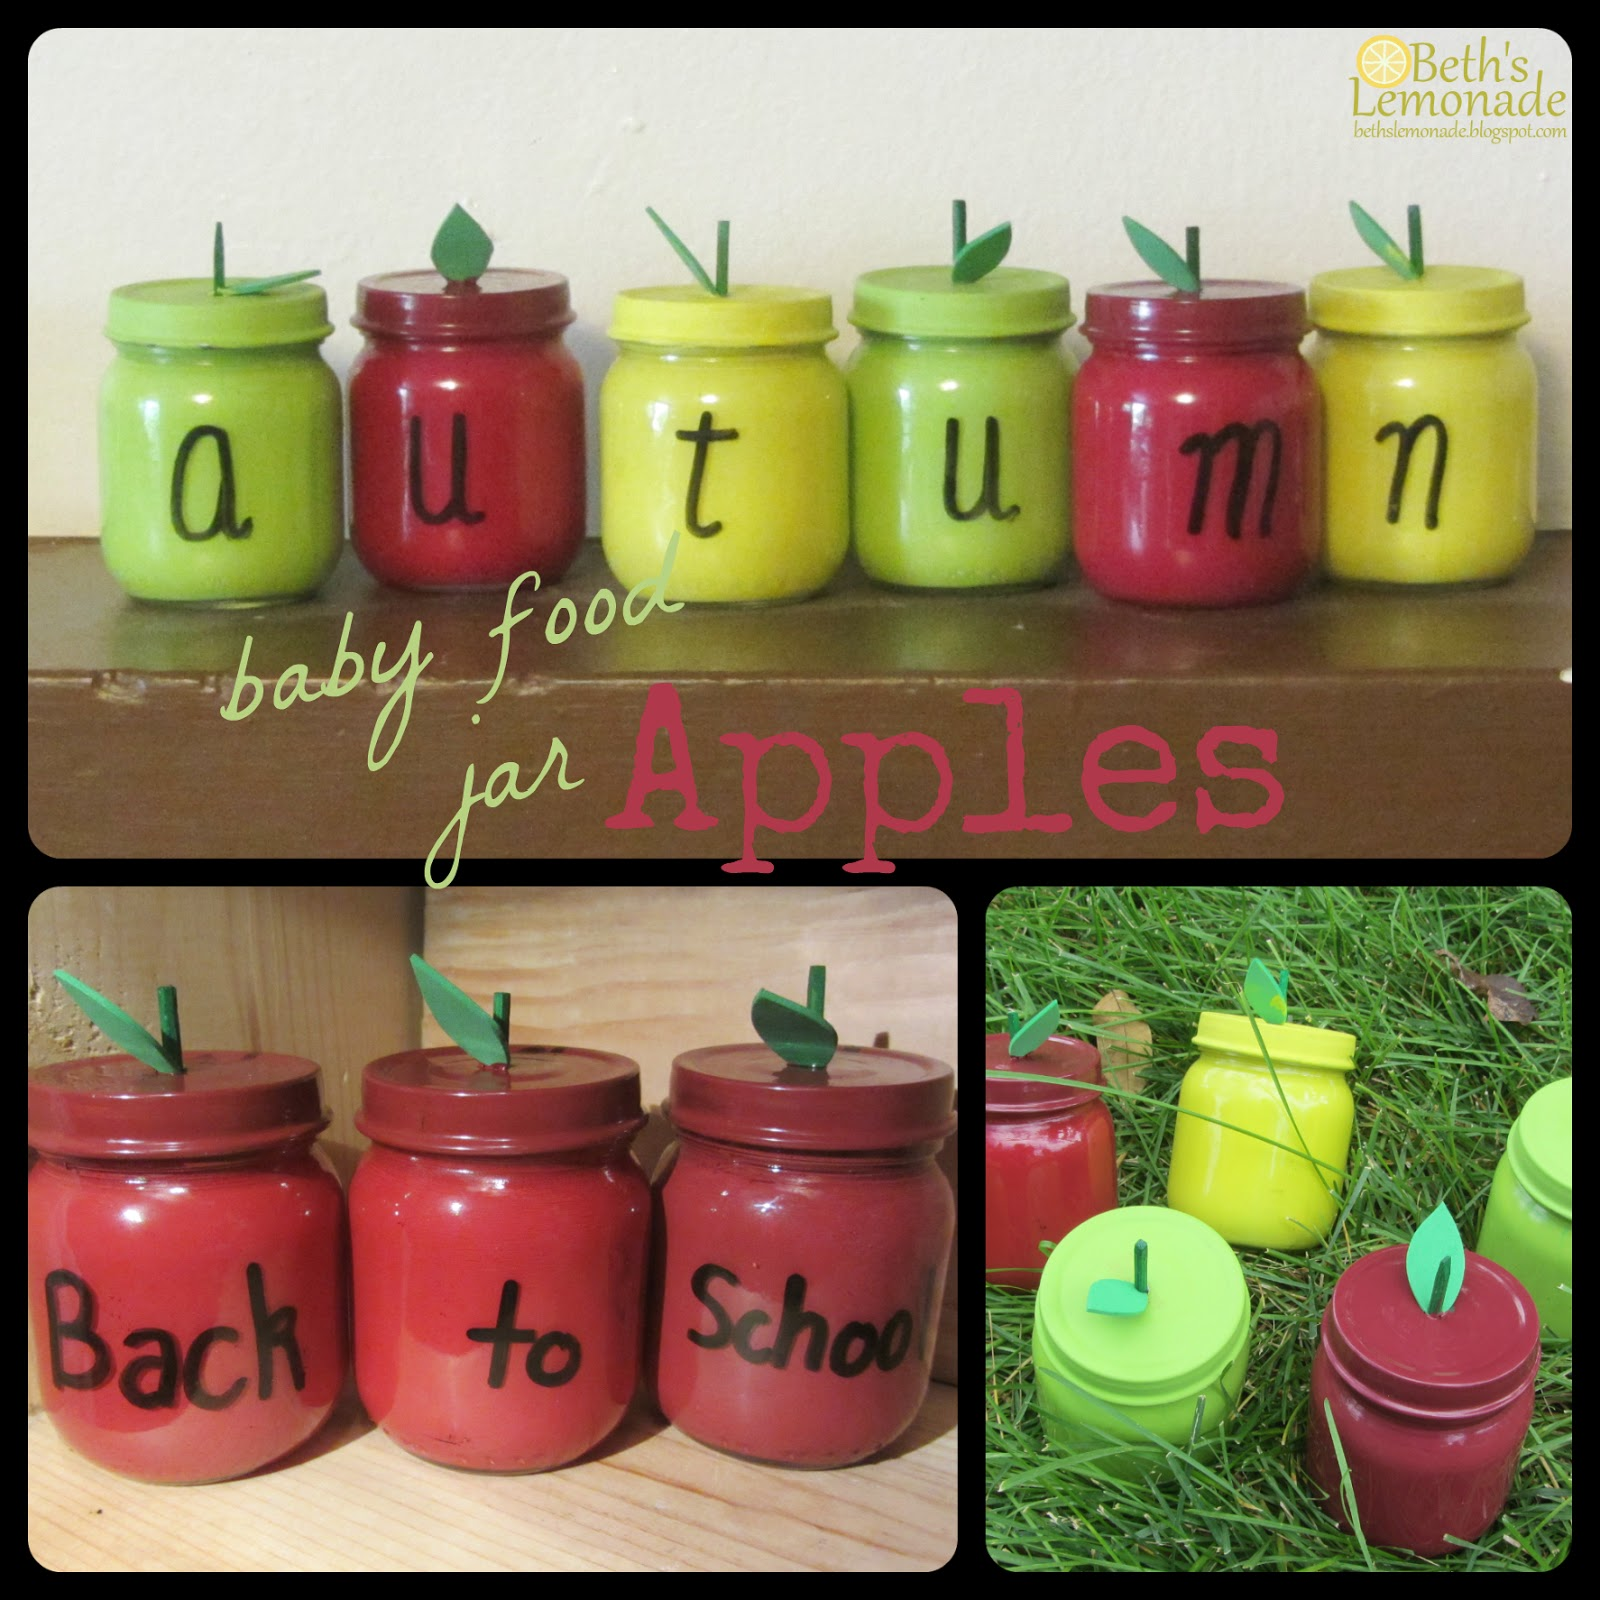 Beth's Lemonade: Baby Food Jar Week: Apple Jars And The